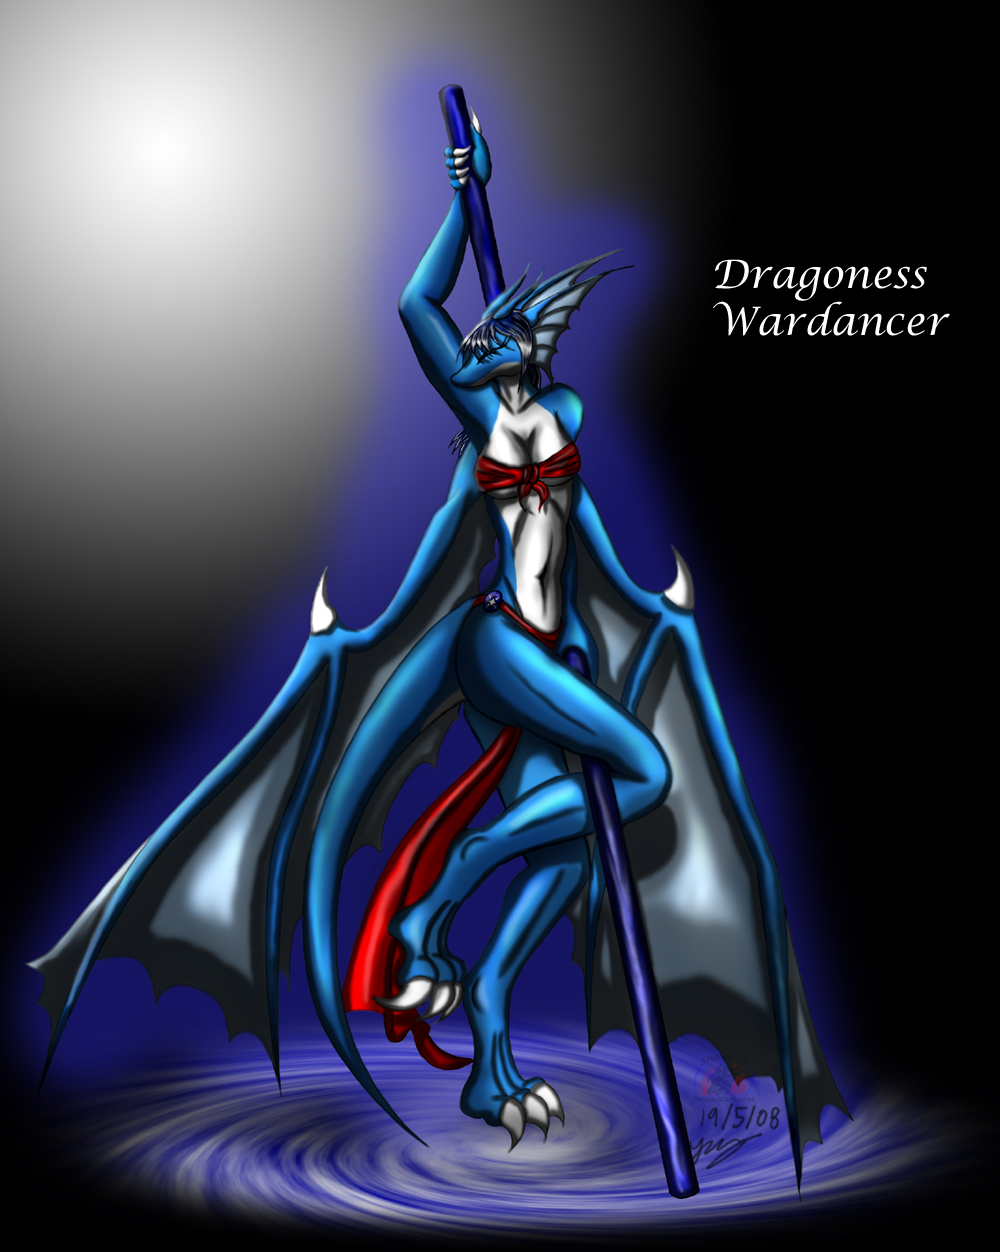 Dragoness Wardancer by Snowfyre